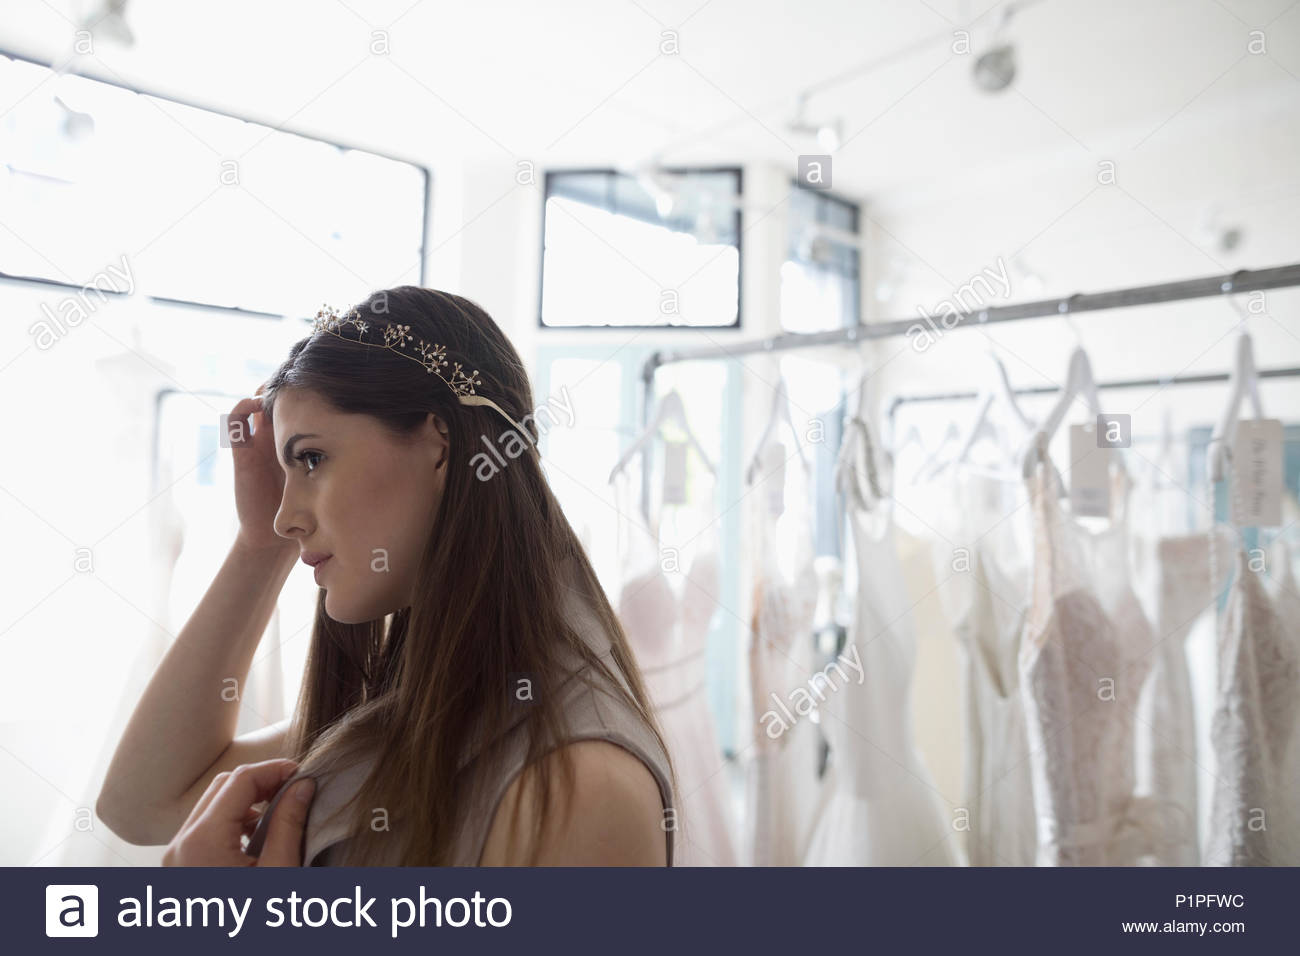 Bride trying on headband at bridal boutique - Stock Image